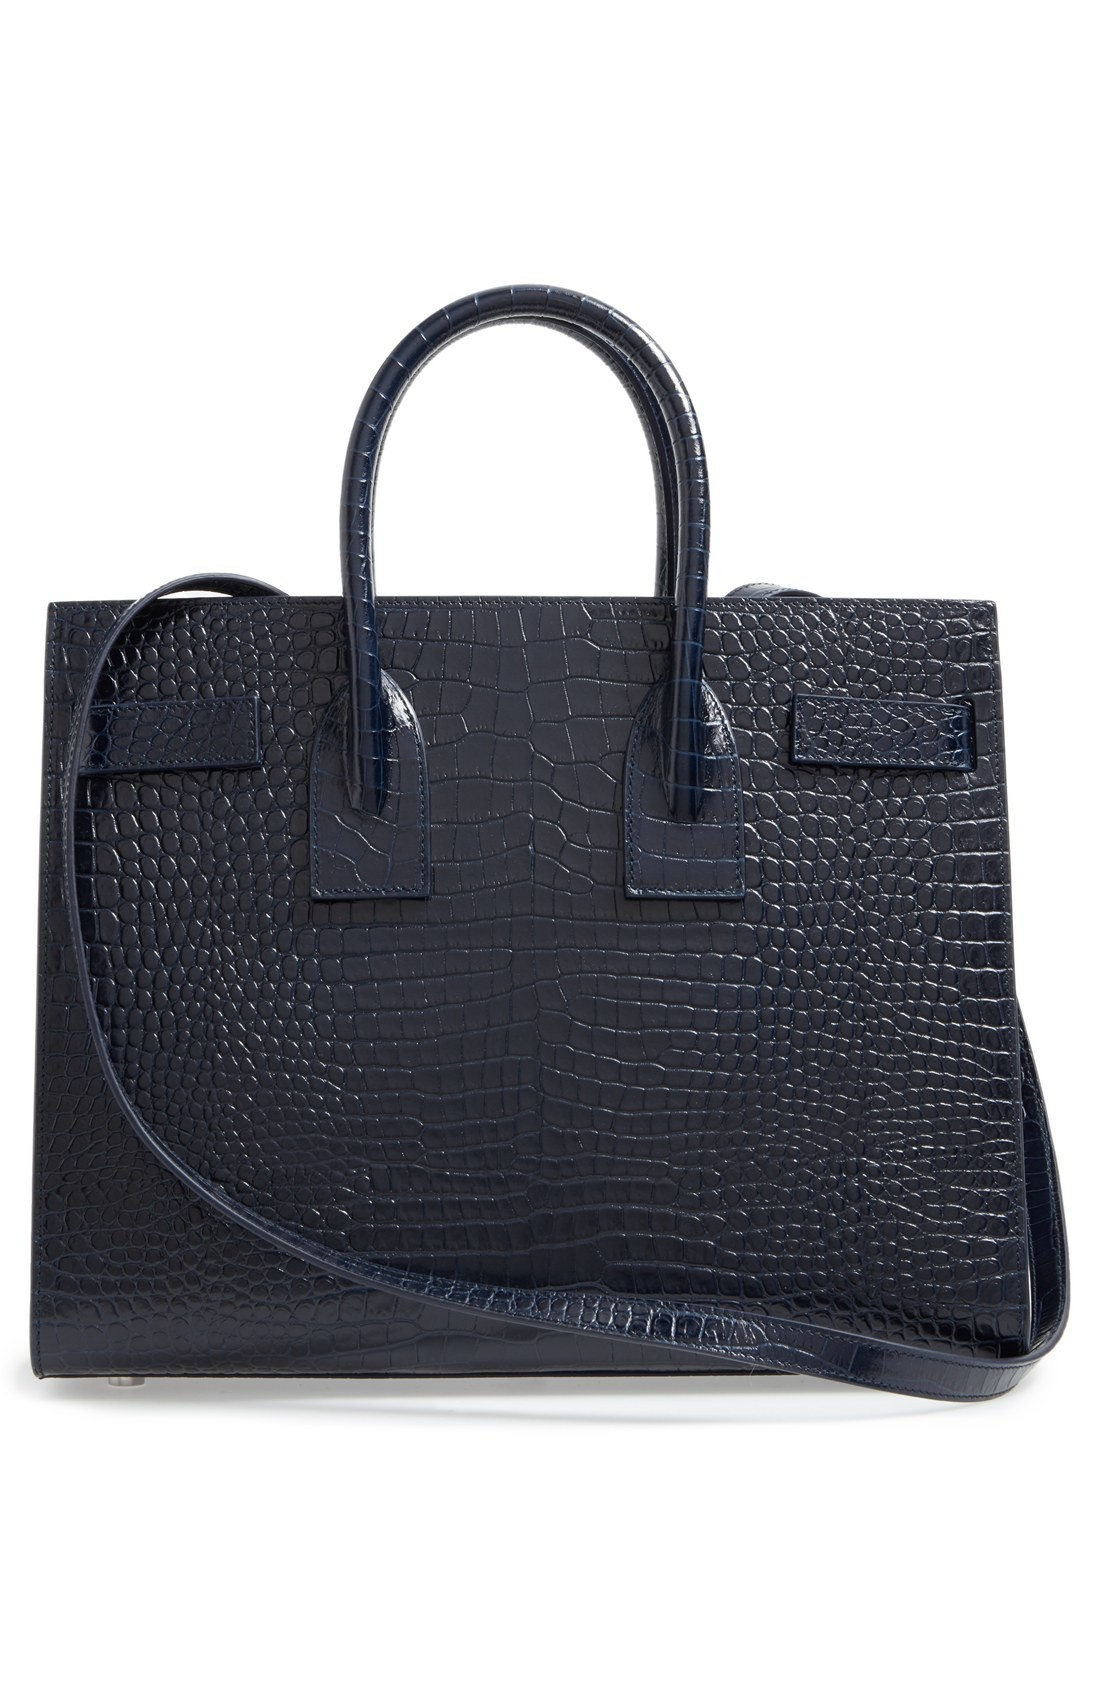 関税送料込 Saint Laurent Small Sac de Jour Croc Embossed  ♪